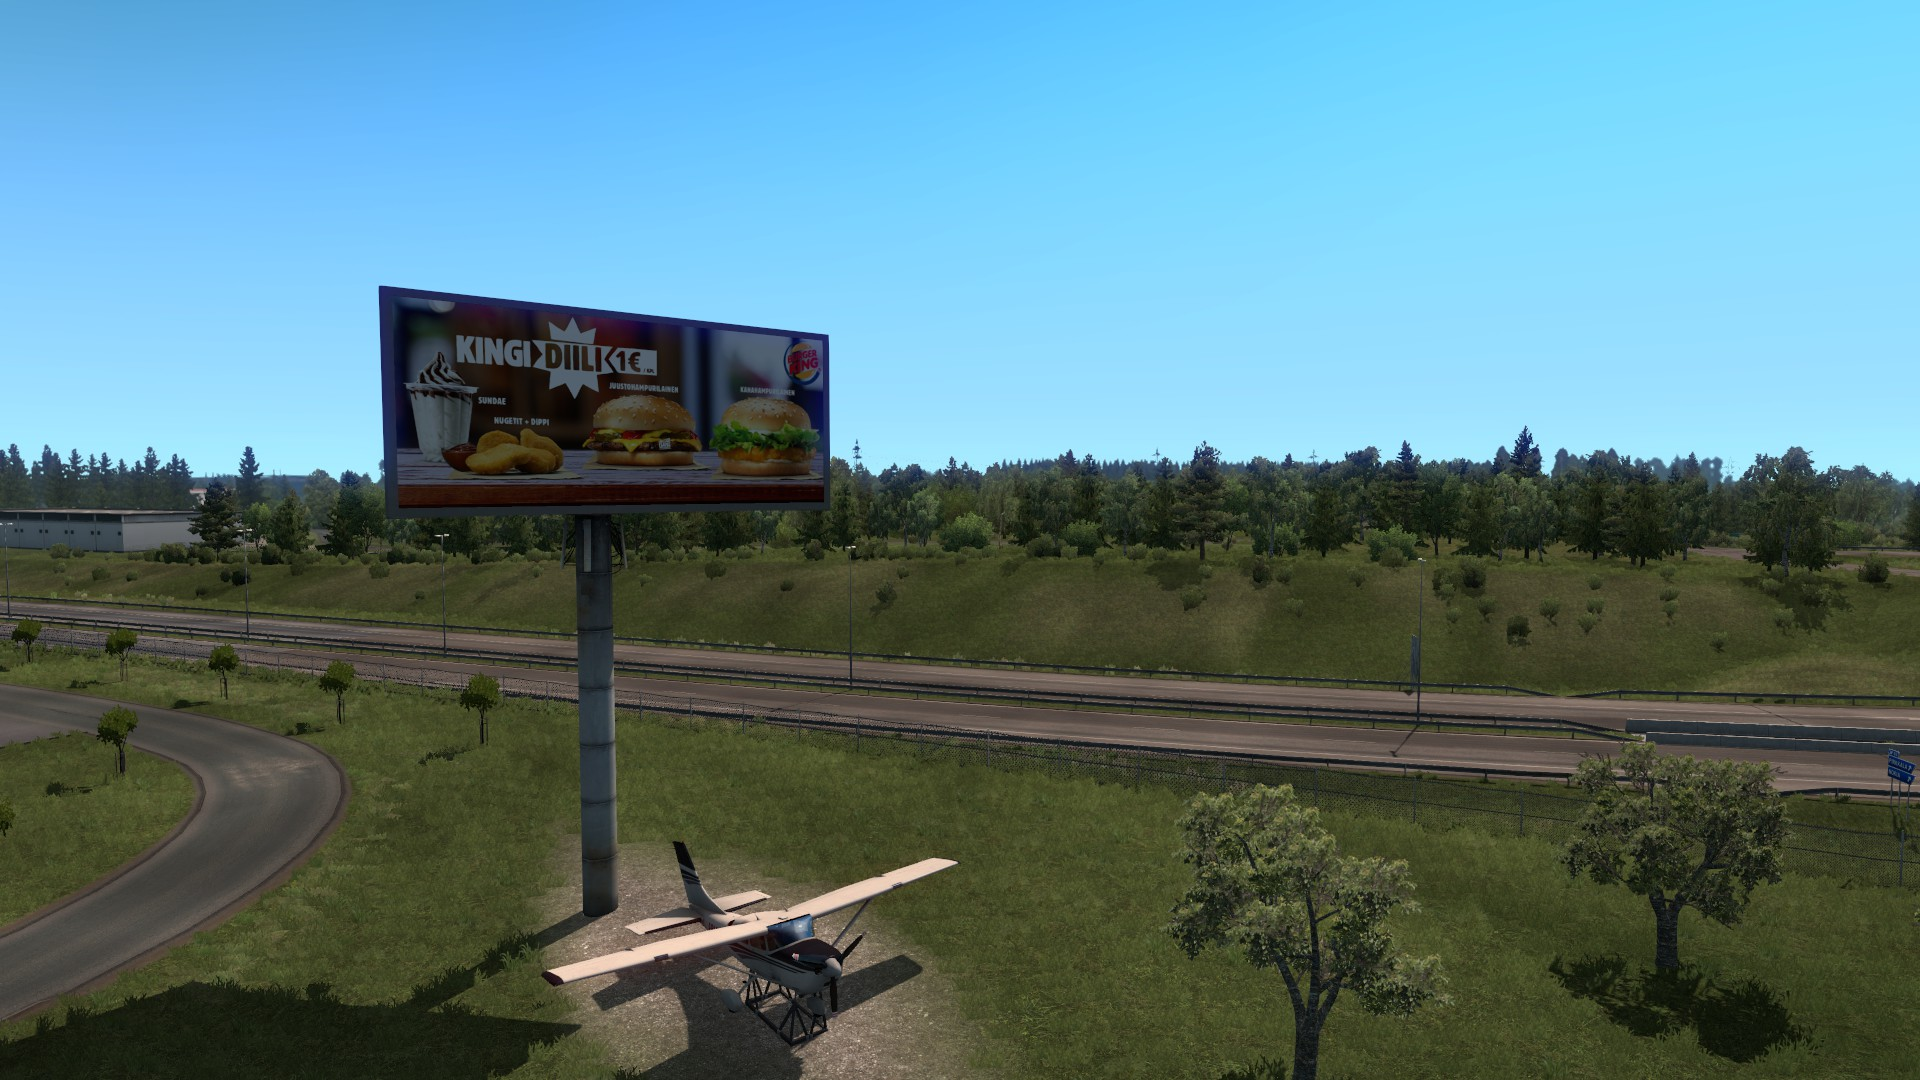 A Euro Truck Sim 2 screenshot showing off a fast food advertisement on a billboard. This is selling Kingi Diili burgers